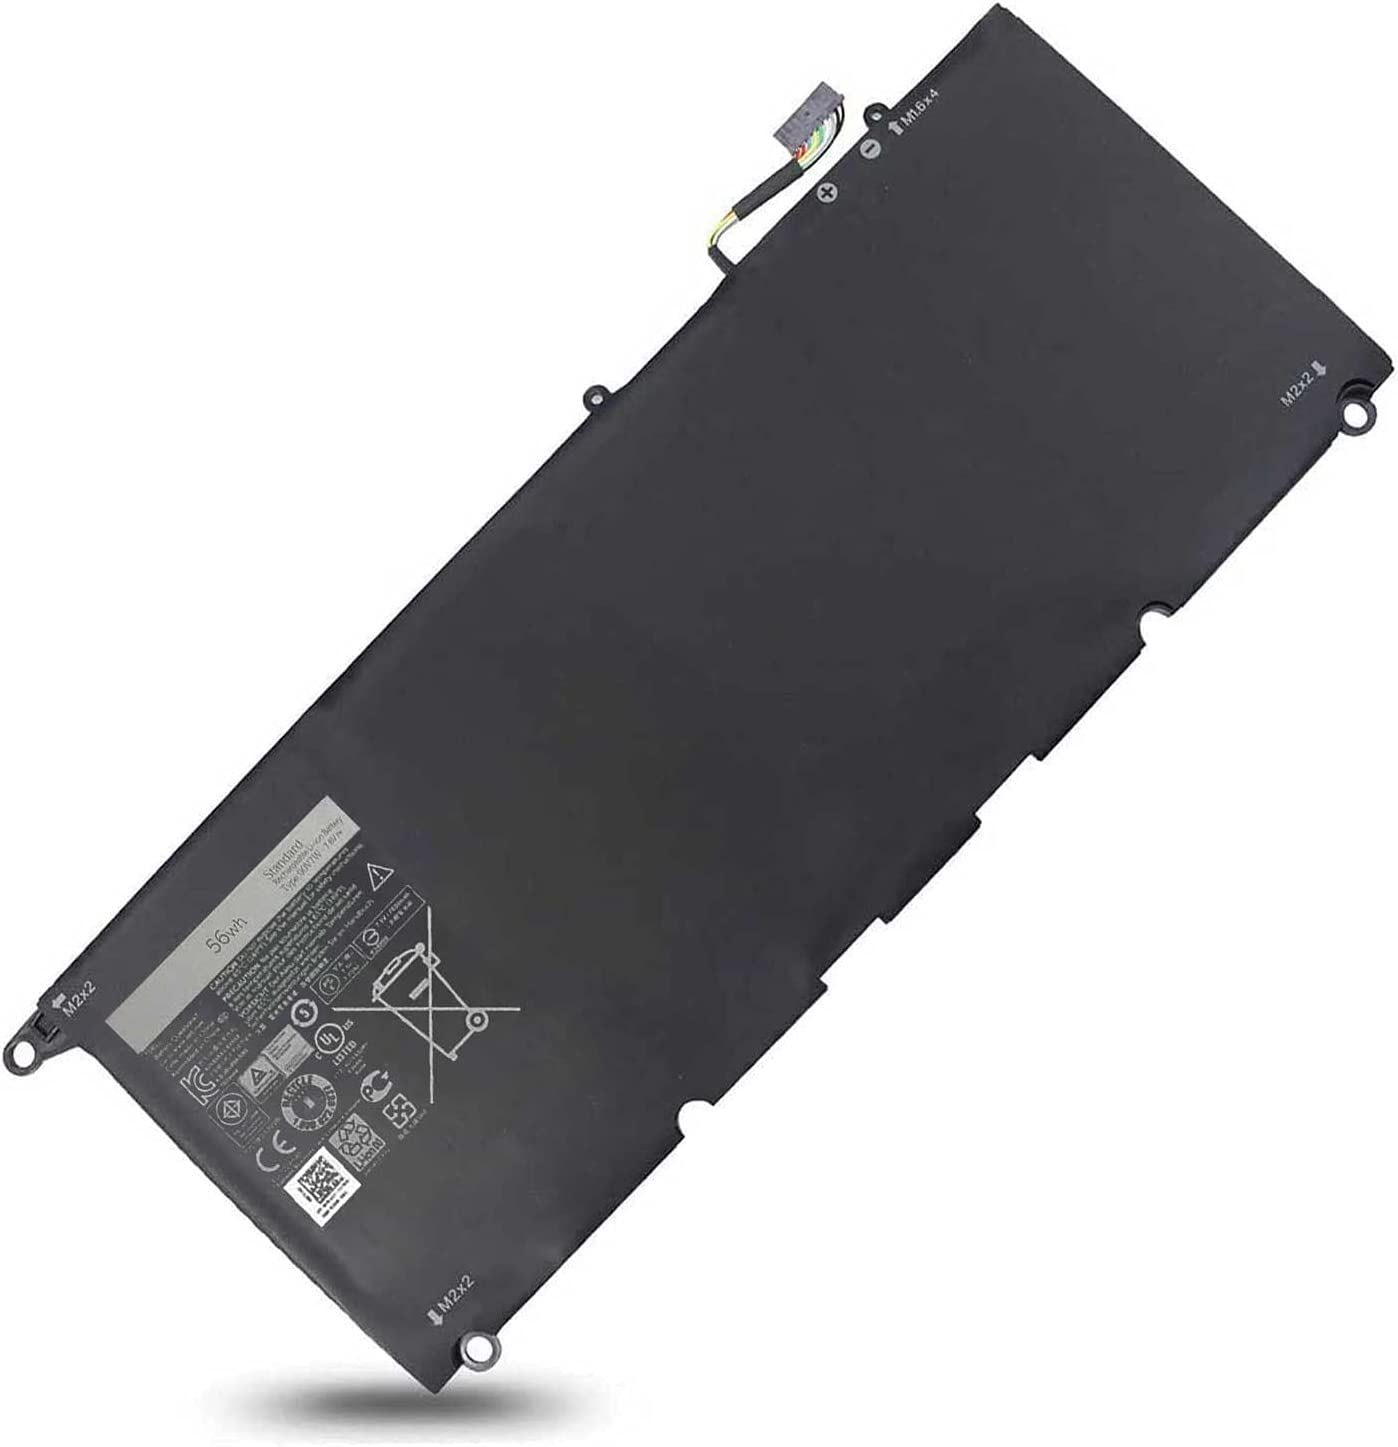 DELL 90V7W JD25G Laptop Battery for Dell XPS 13 9343 9350 Dell Battery for P54G P54G001 P54G002 13D 9343 13D-9343-1808T 13D-9343-350 13D-9343-3708 13-9350-D1708 13-9350-D1608 Notebook 7.6V 56Wh